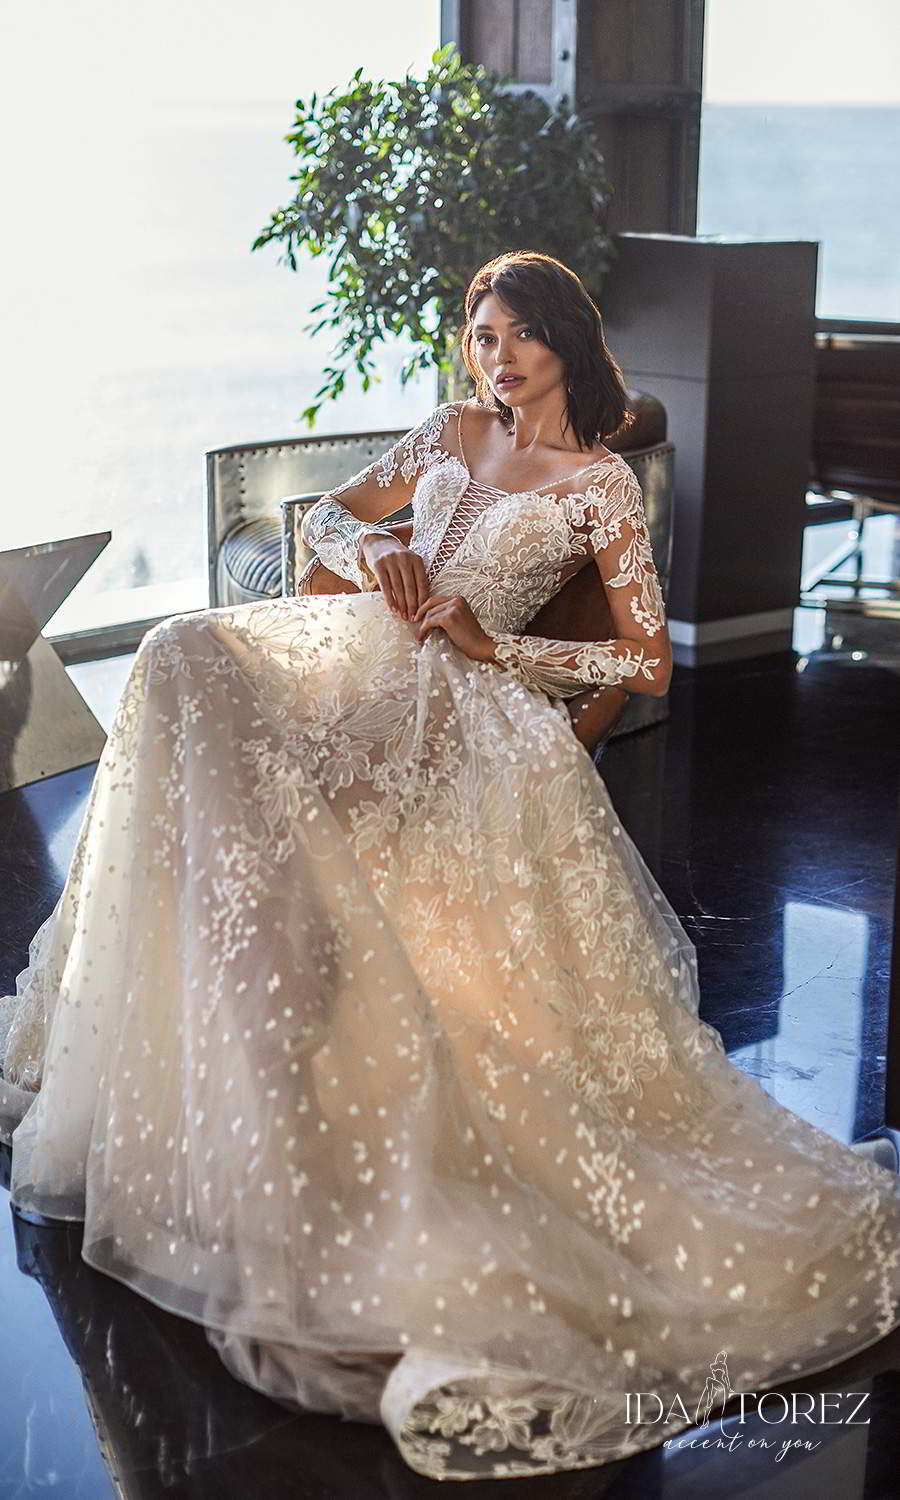 ida torez 2021 bridal long sleeve plunging v neckline fully embellished lace a line ball gown wedding dress chapel train sheer back (ideal woman) mv